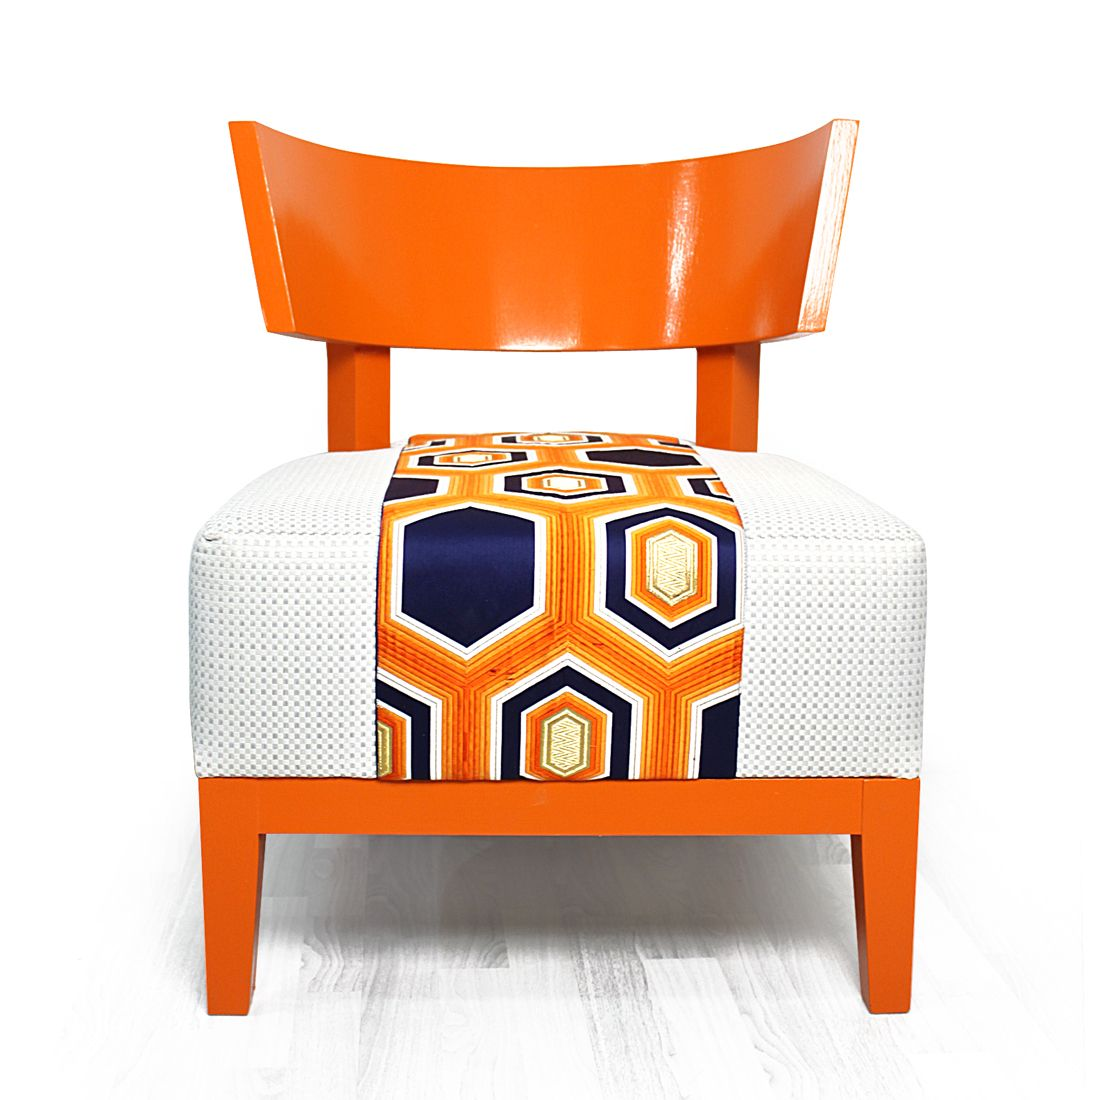 OBI Chair by Red Square  Drawing furniture, Furniture, Chair